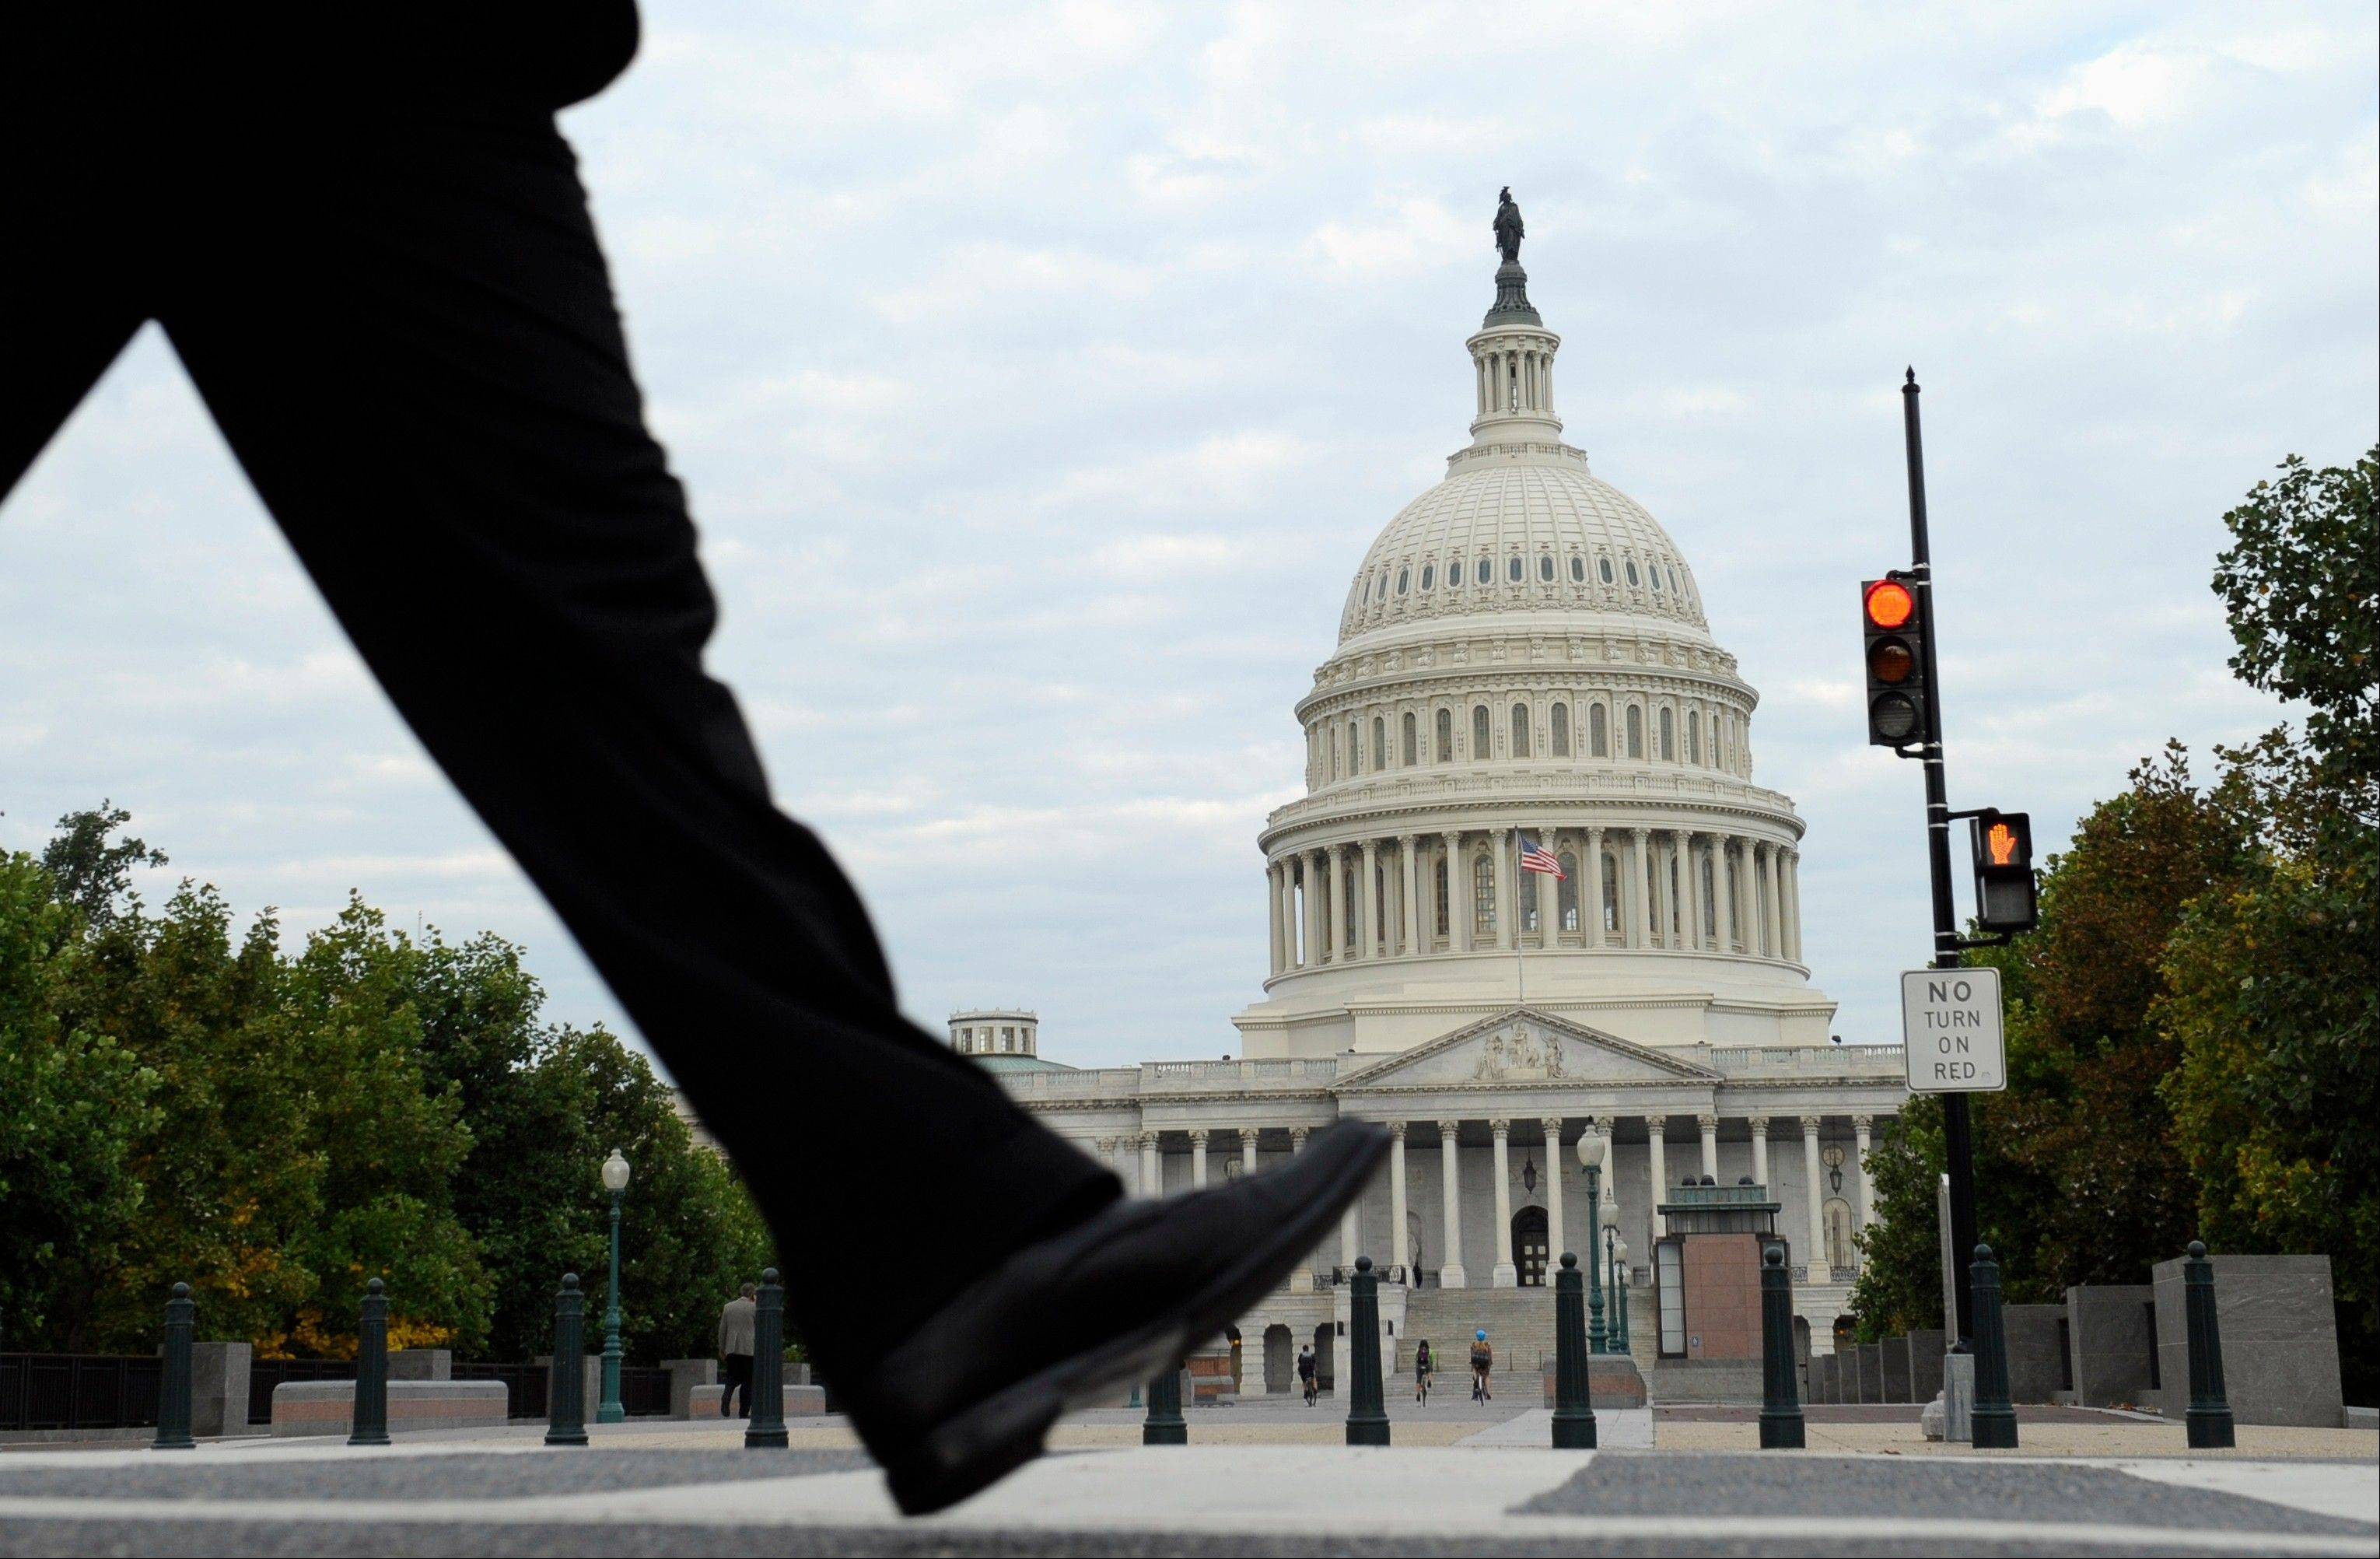 The roiling debate over a government shutdown has extended to Twitter, Facebook and Instagram, with tens of thousands of fed-up Americans registering their disgust with federal lawmakers for shutting down the government.